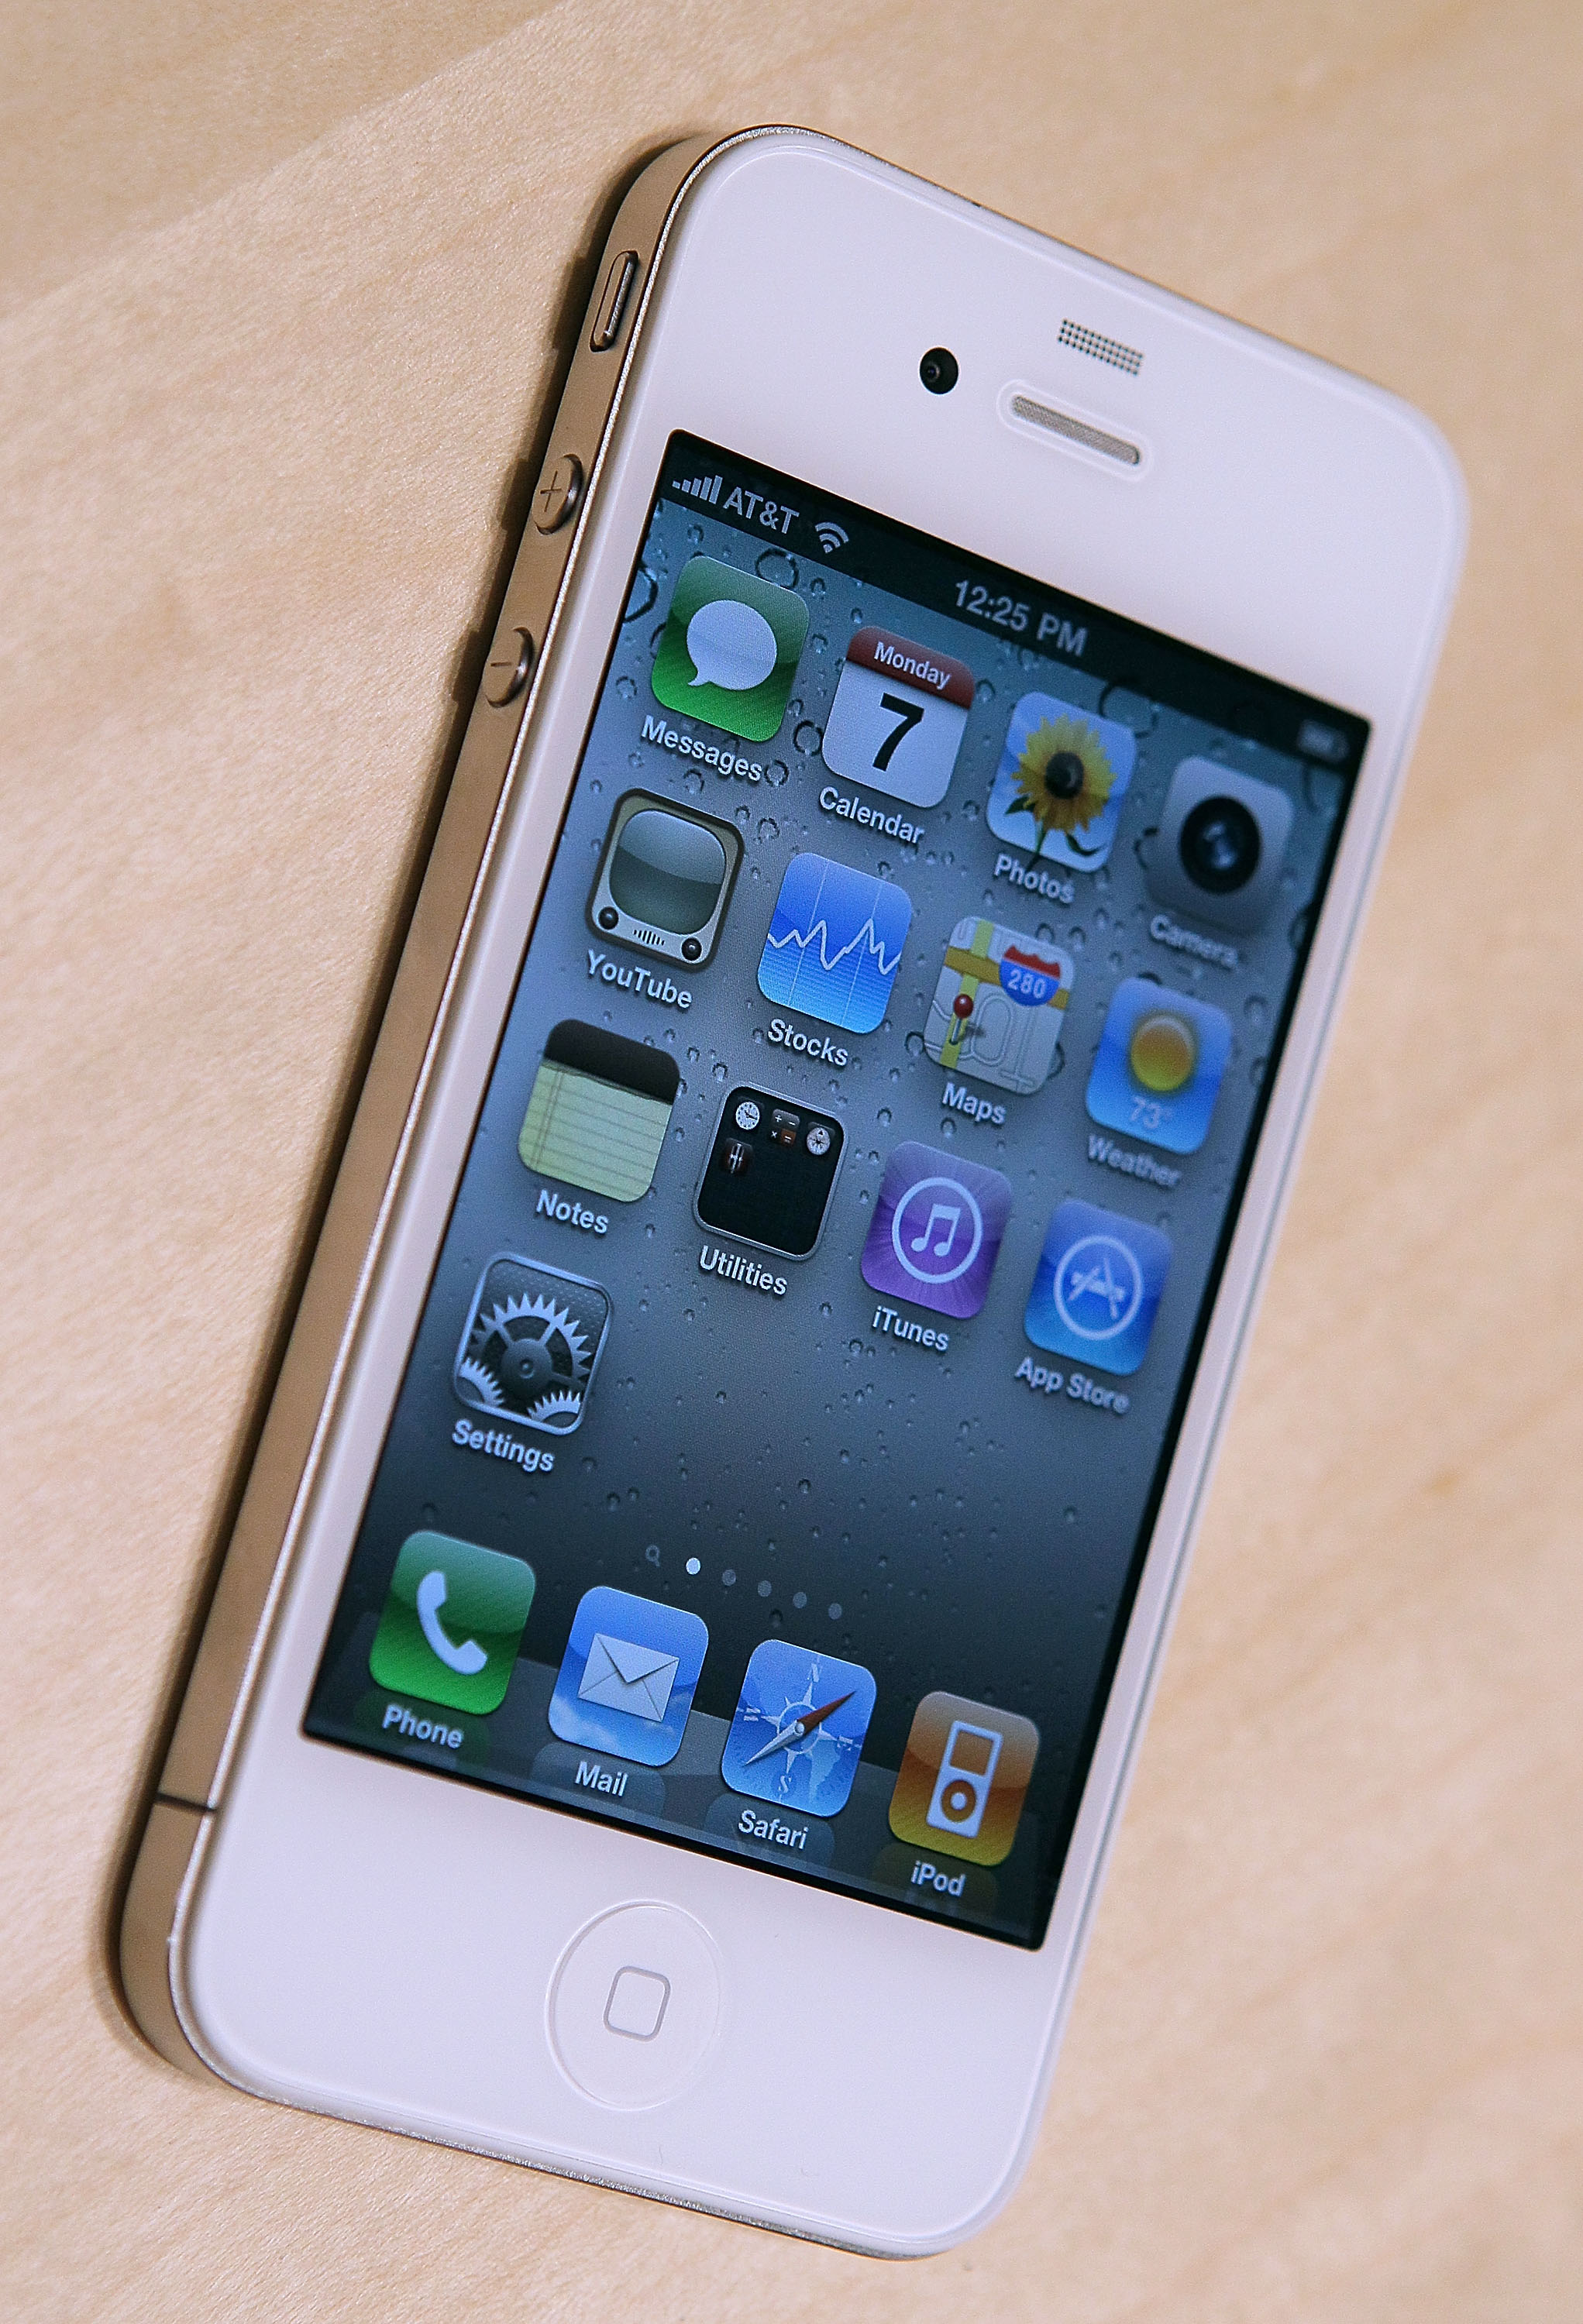 The new iPhone 4 is displayed at the 2010 Apple World Wide Developers conference June 7, 2010 in San Francisco, California.